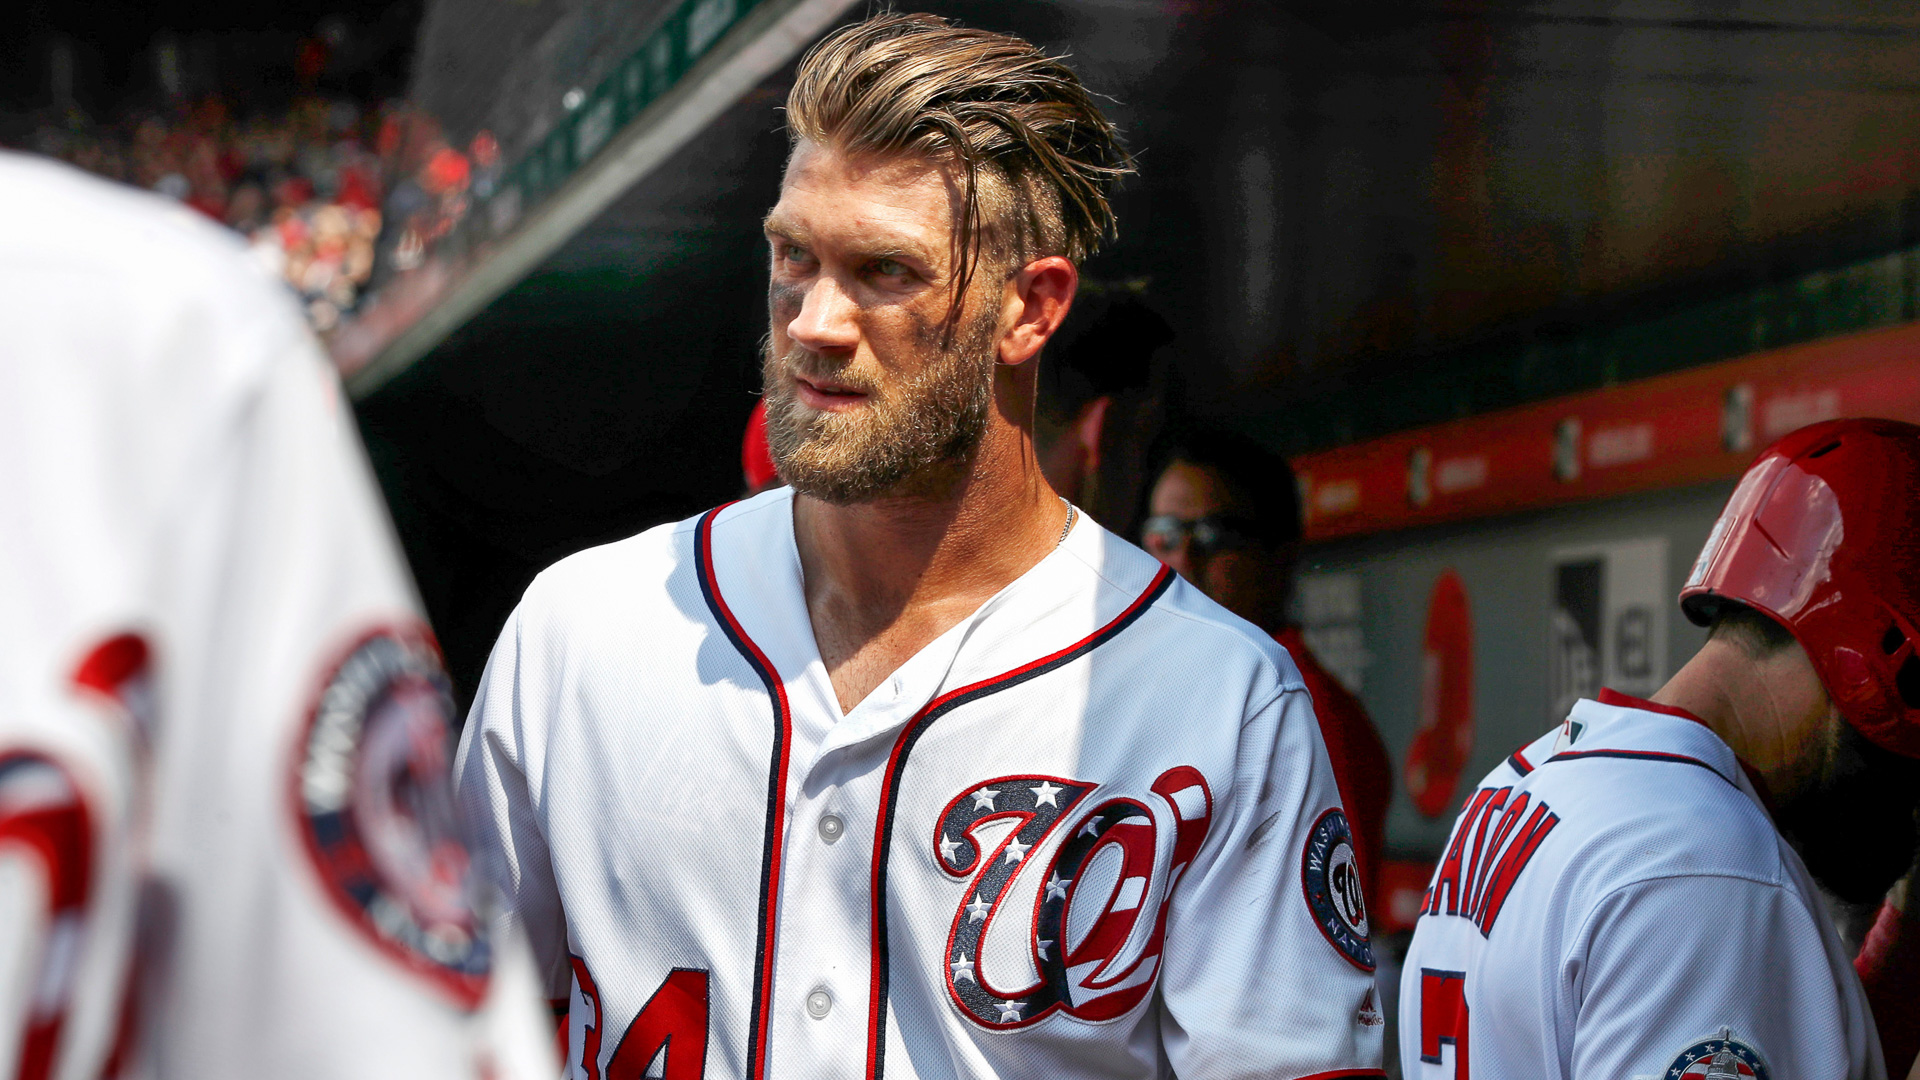 Bryce Harper's Net Worth Just Got a Major Boost After Signing the Biggest Contract in Baseball History